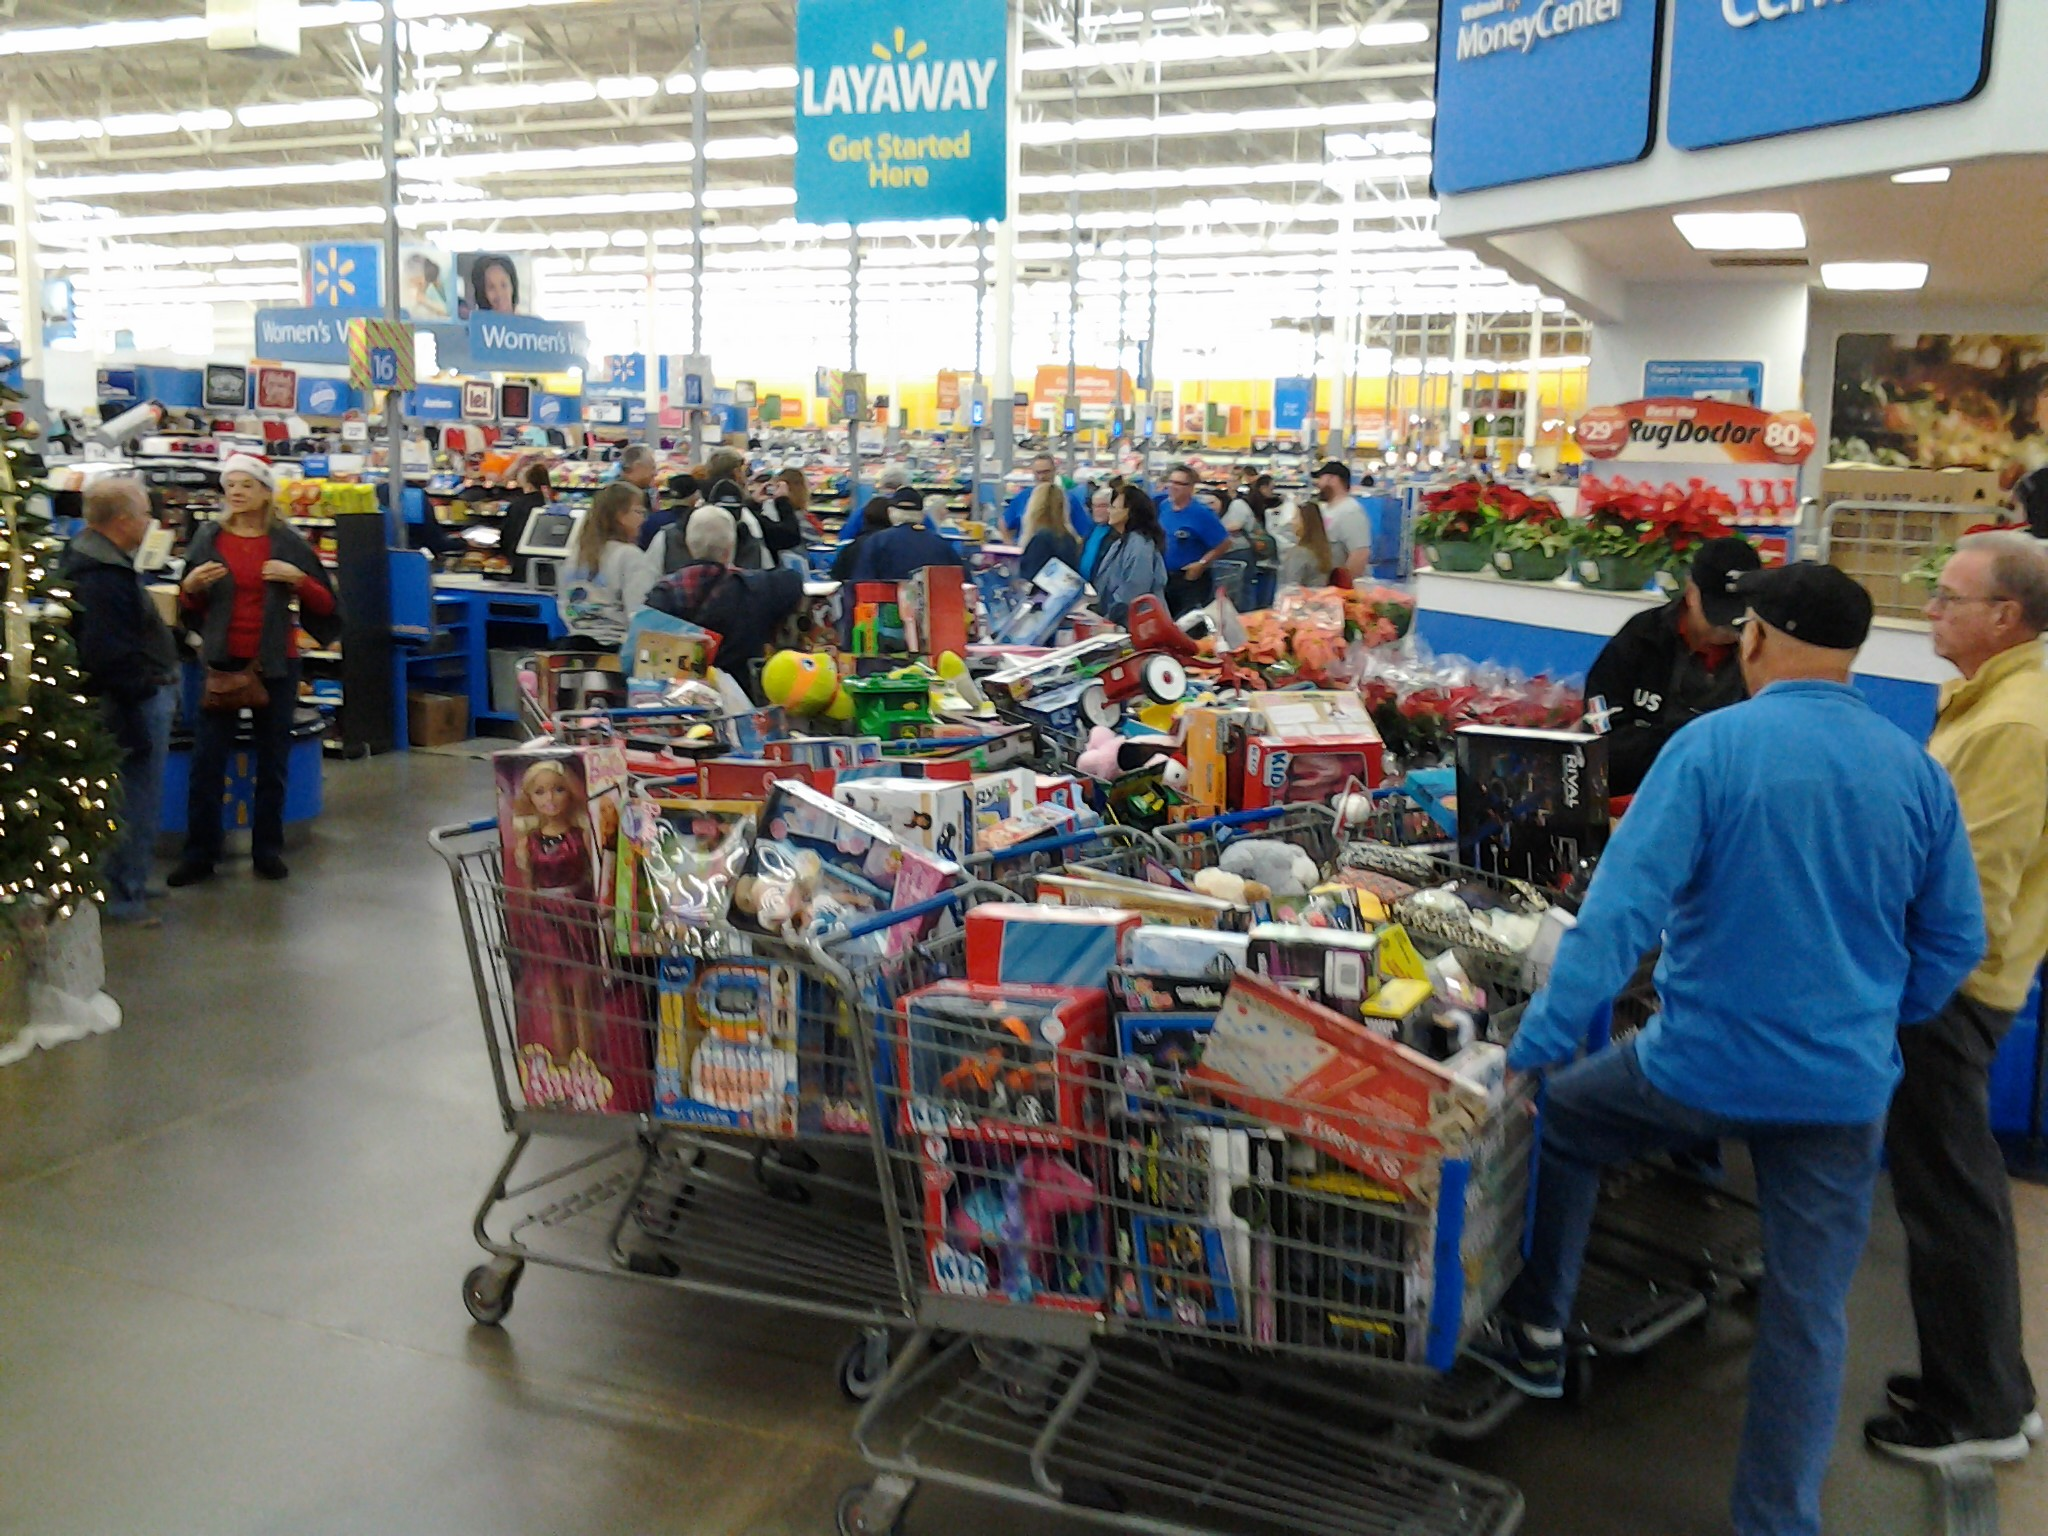 2016-toys-for-tots-walmart-shopping-1-12-03-16